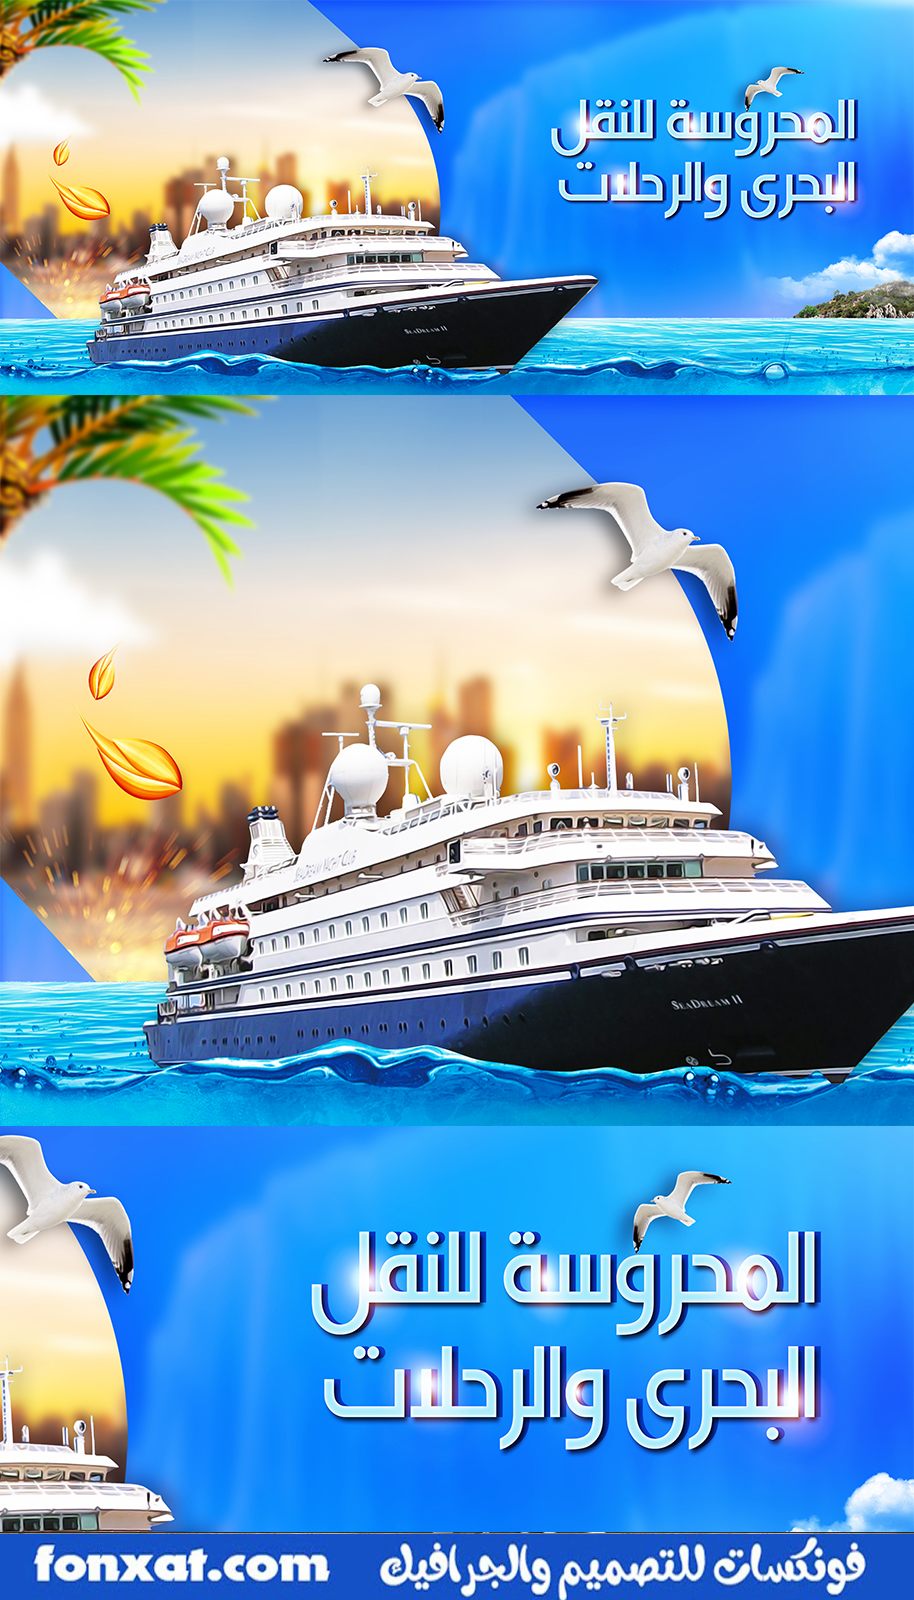 Special design, transport and tourism companies, large banner suitable for print or web banners with modification of sizes